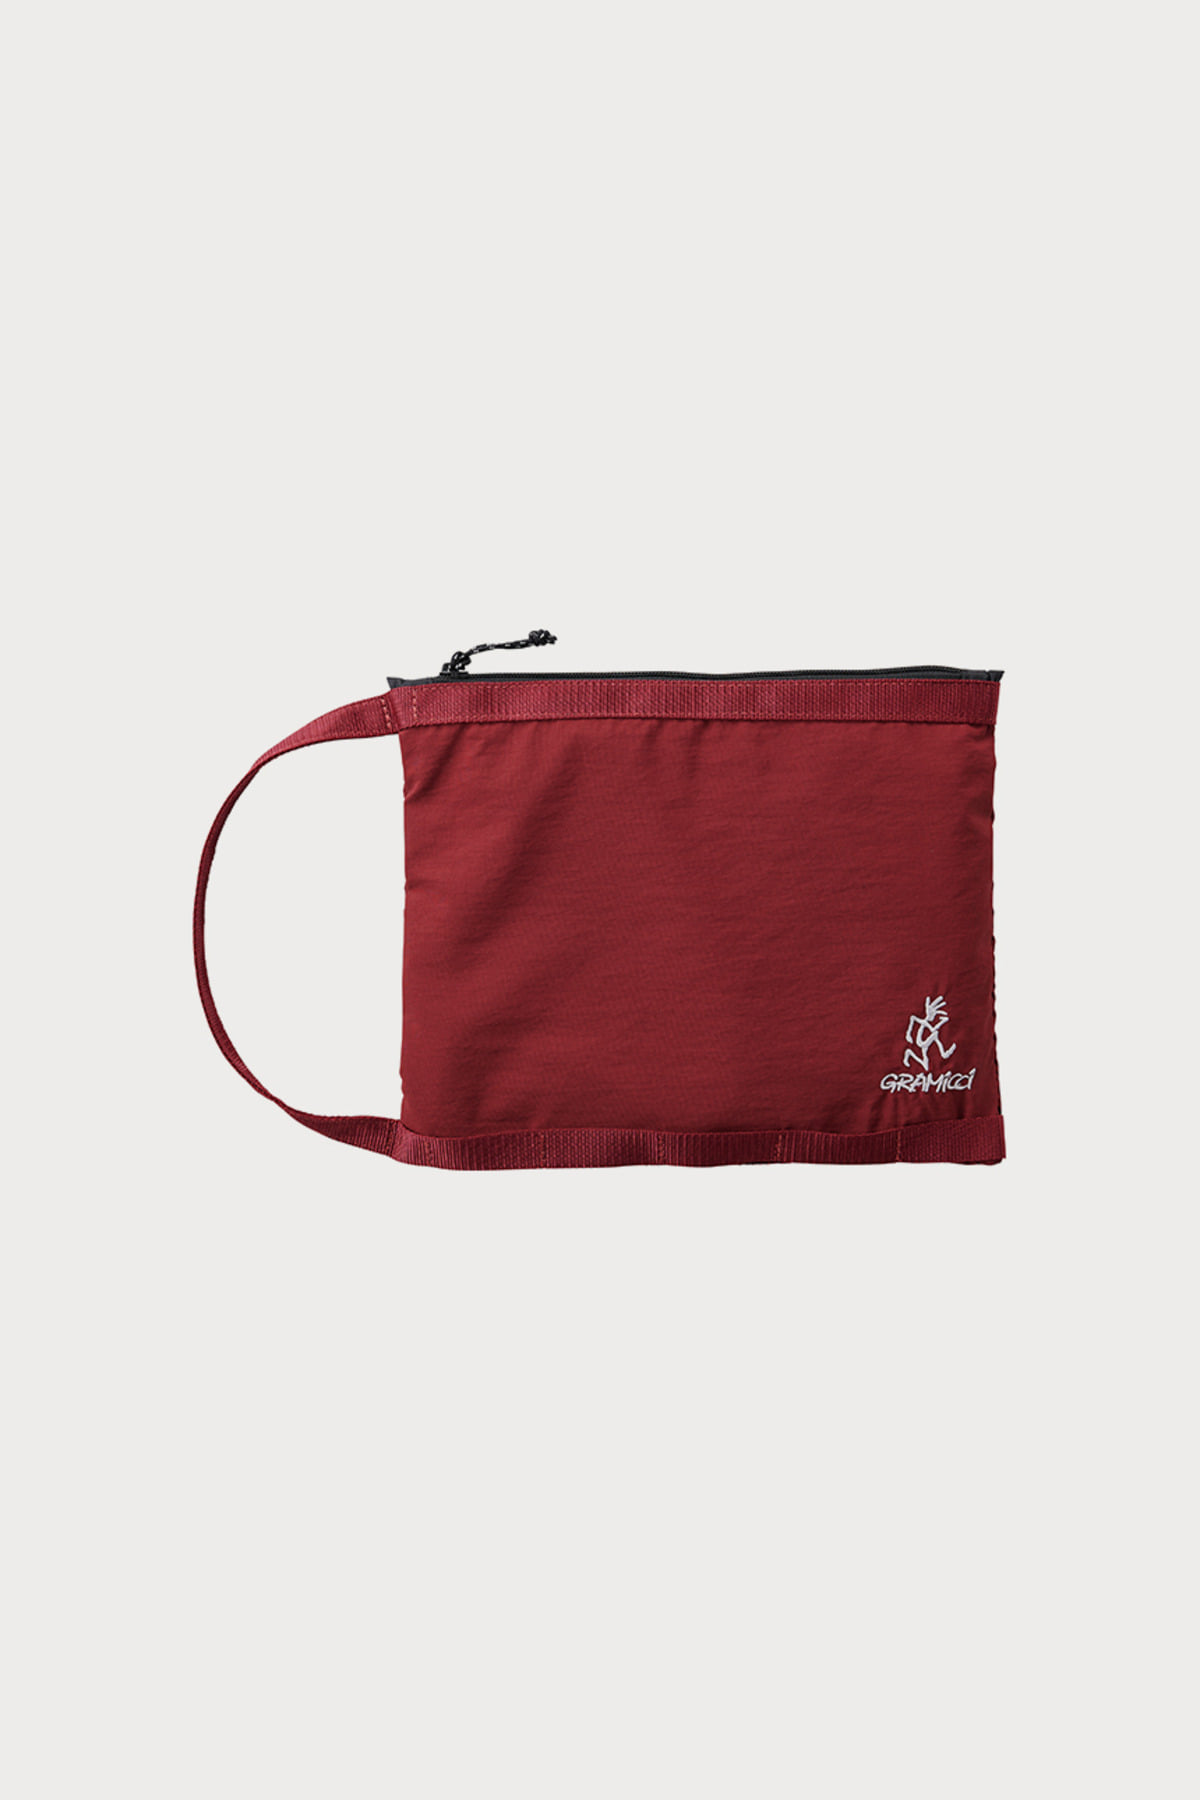 HANDLE POUCH BURGANDY